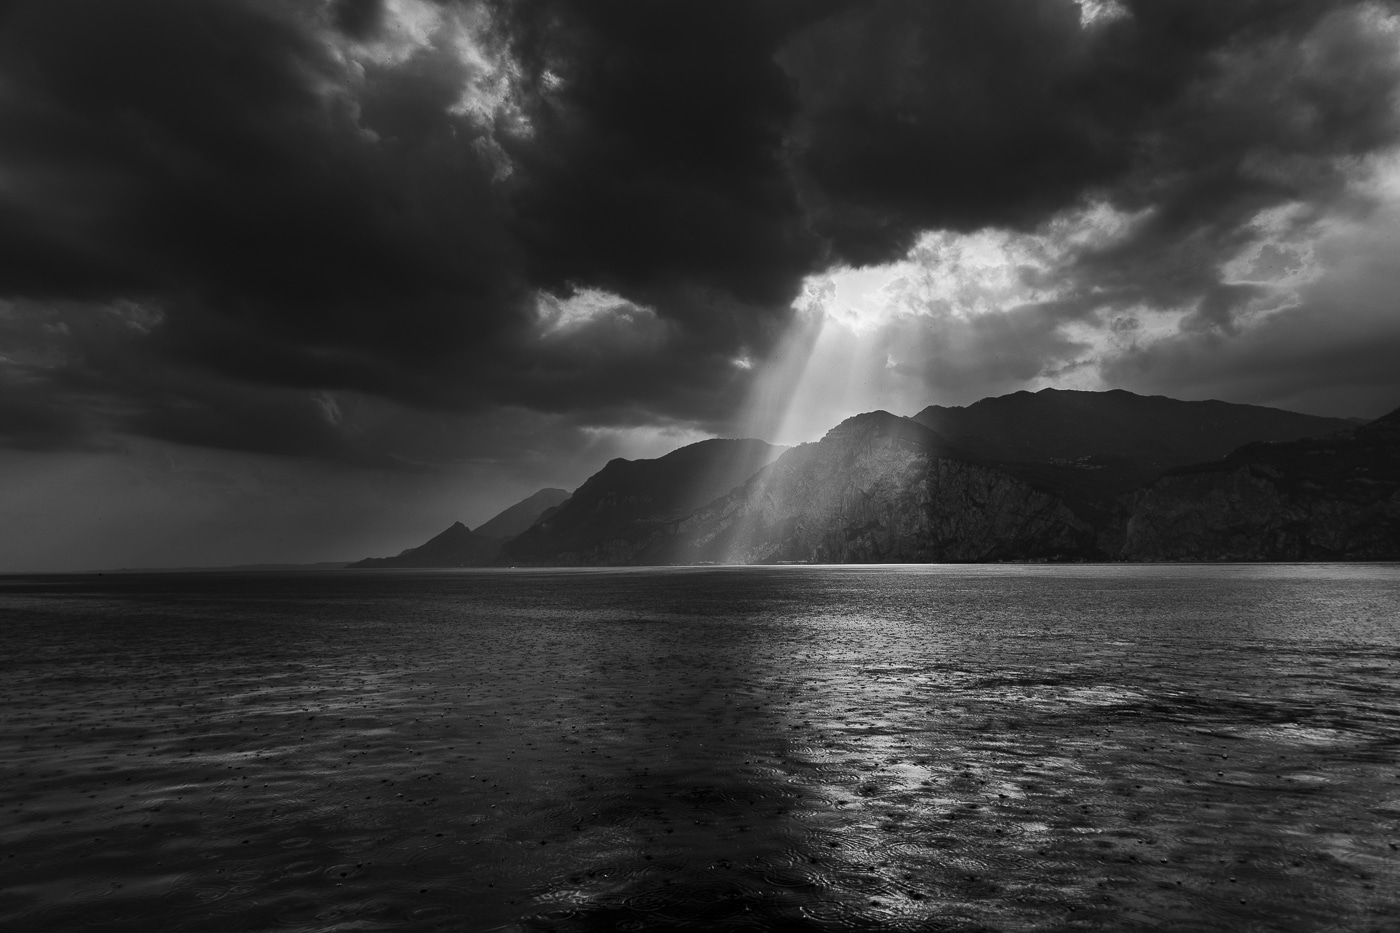 Sun rays breaking through the dark clouds and waves with raindrops on in front of mountains of lake garda in italy by Joshua Wyborn